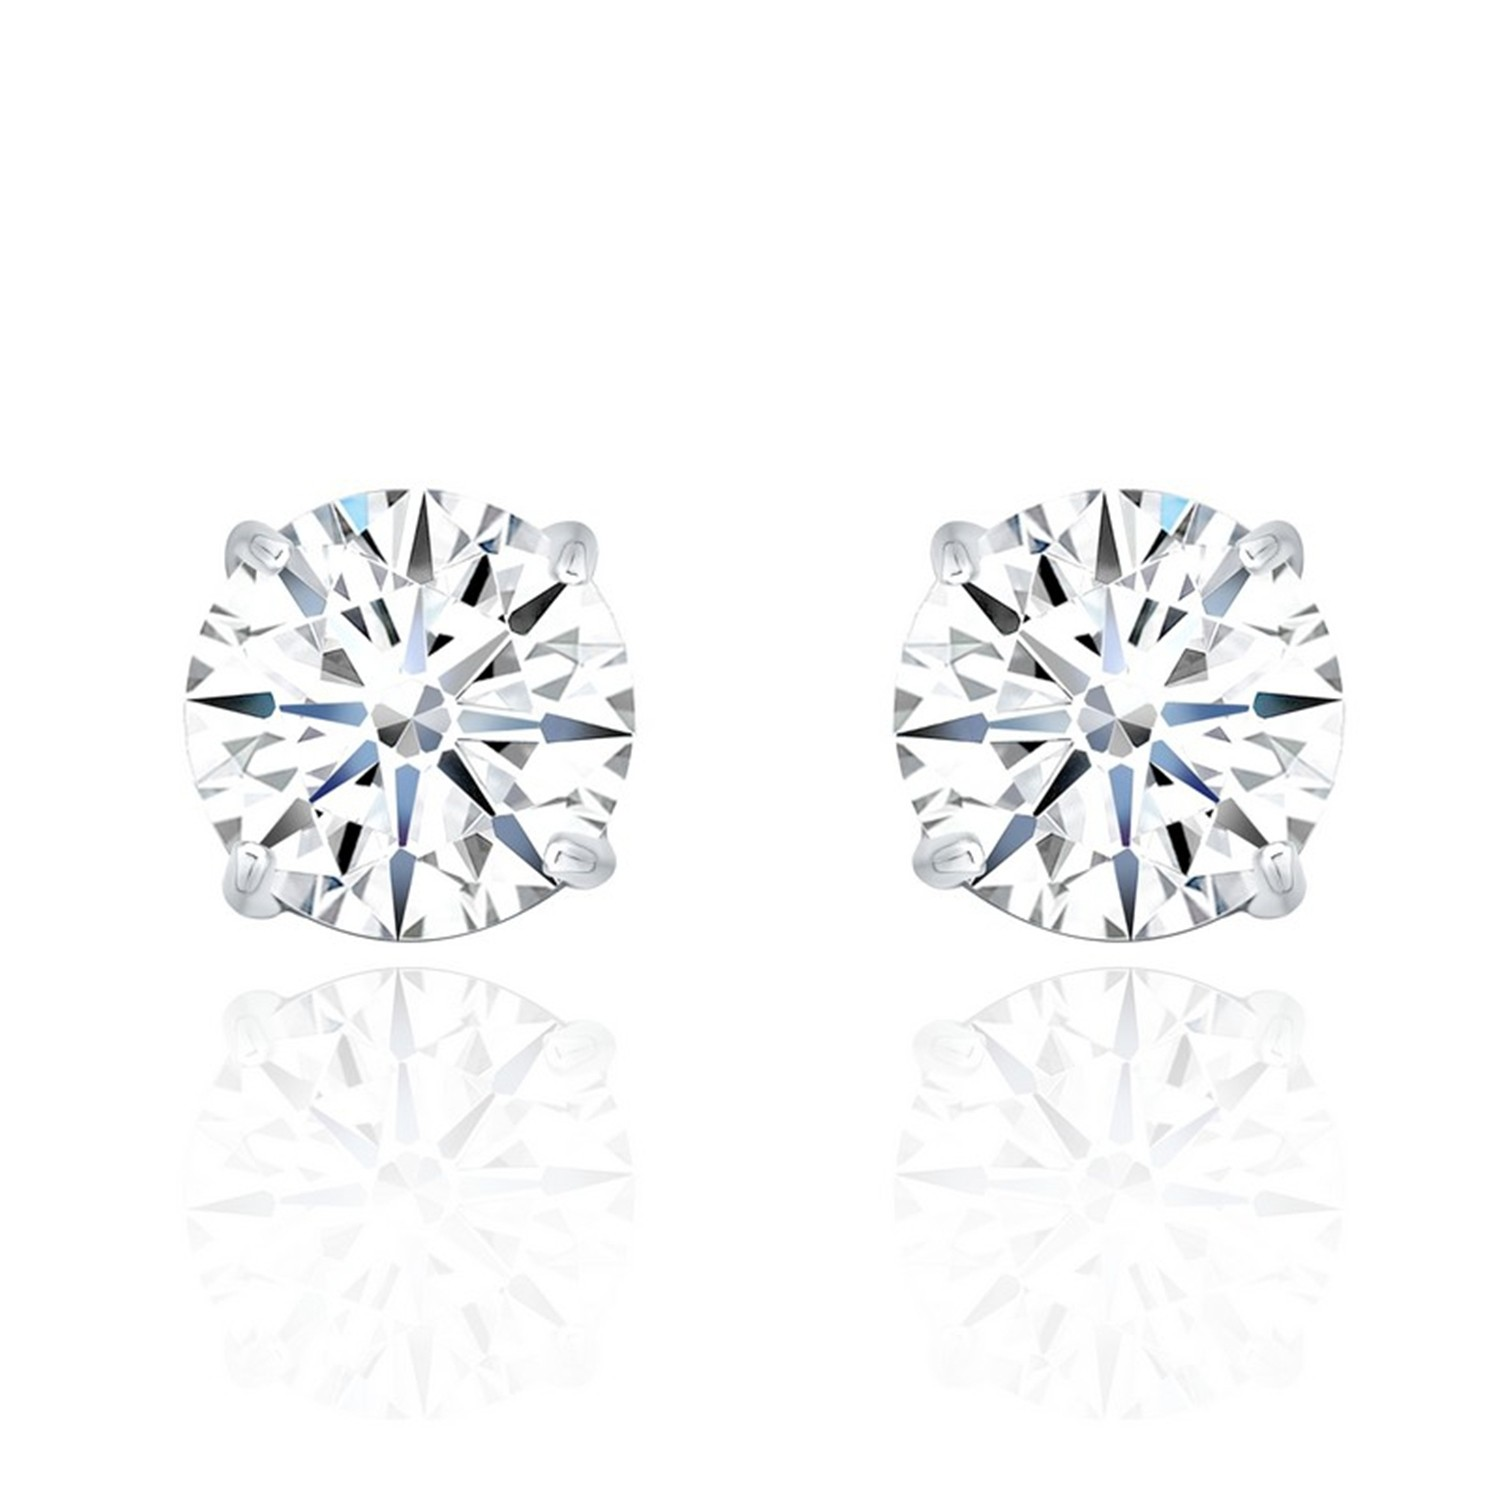 Simple 925 sterling silver cubic zirconia stud earrings cheap women jewelry wedding accessories